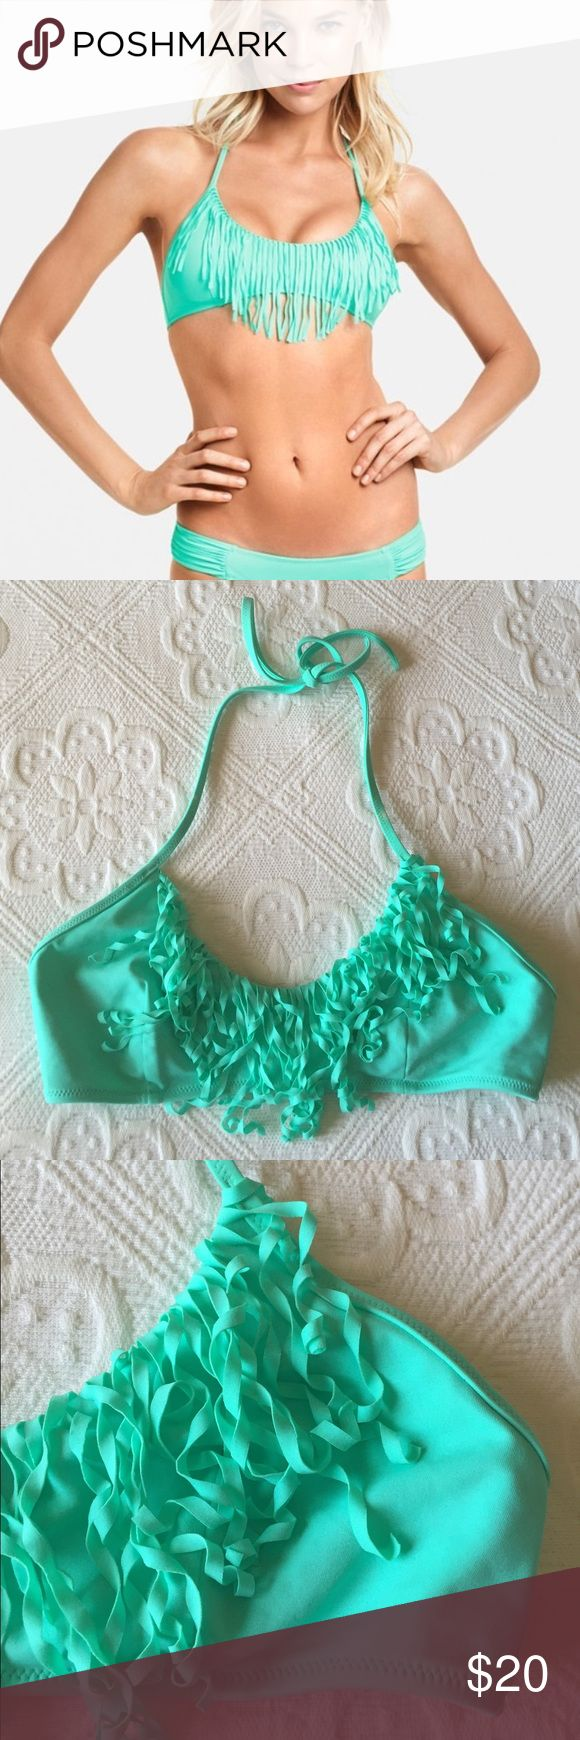 Victoria's Secret - Fringe Halter Swim Top Victoria's Secret - Fringe Halter Swim Top ONLY / Has been worn, slight discoloration spots from wearing in chlorine & the fringe has curled..such a cute top!  Color is a sea foam green. Victoria's Secret Swim